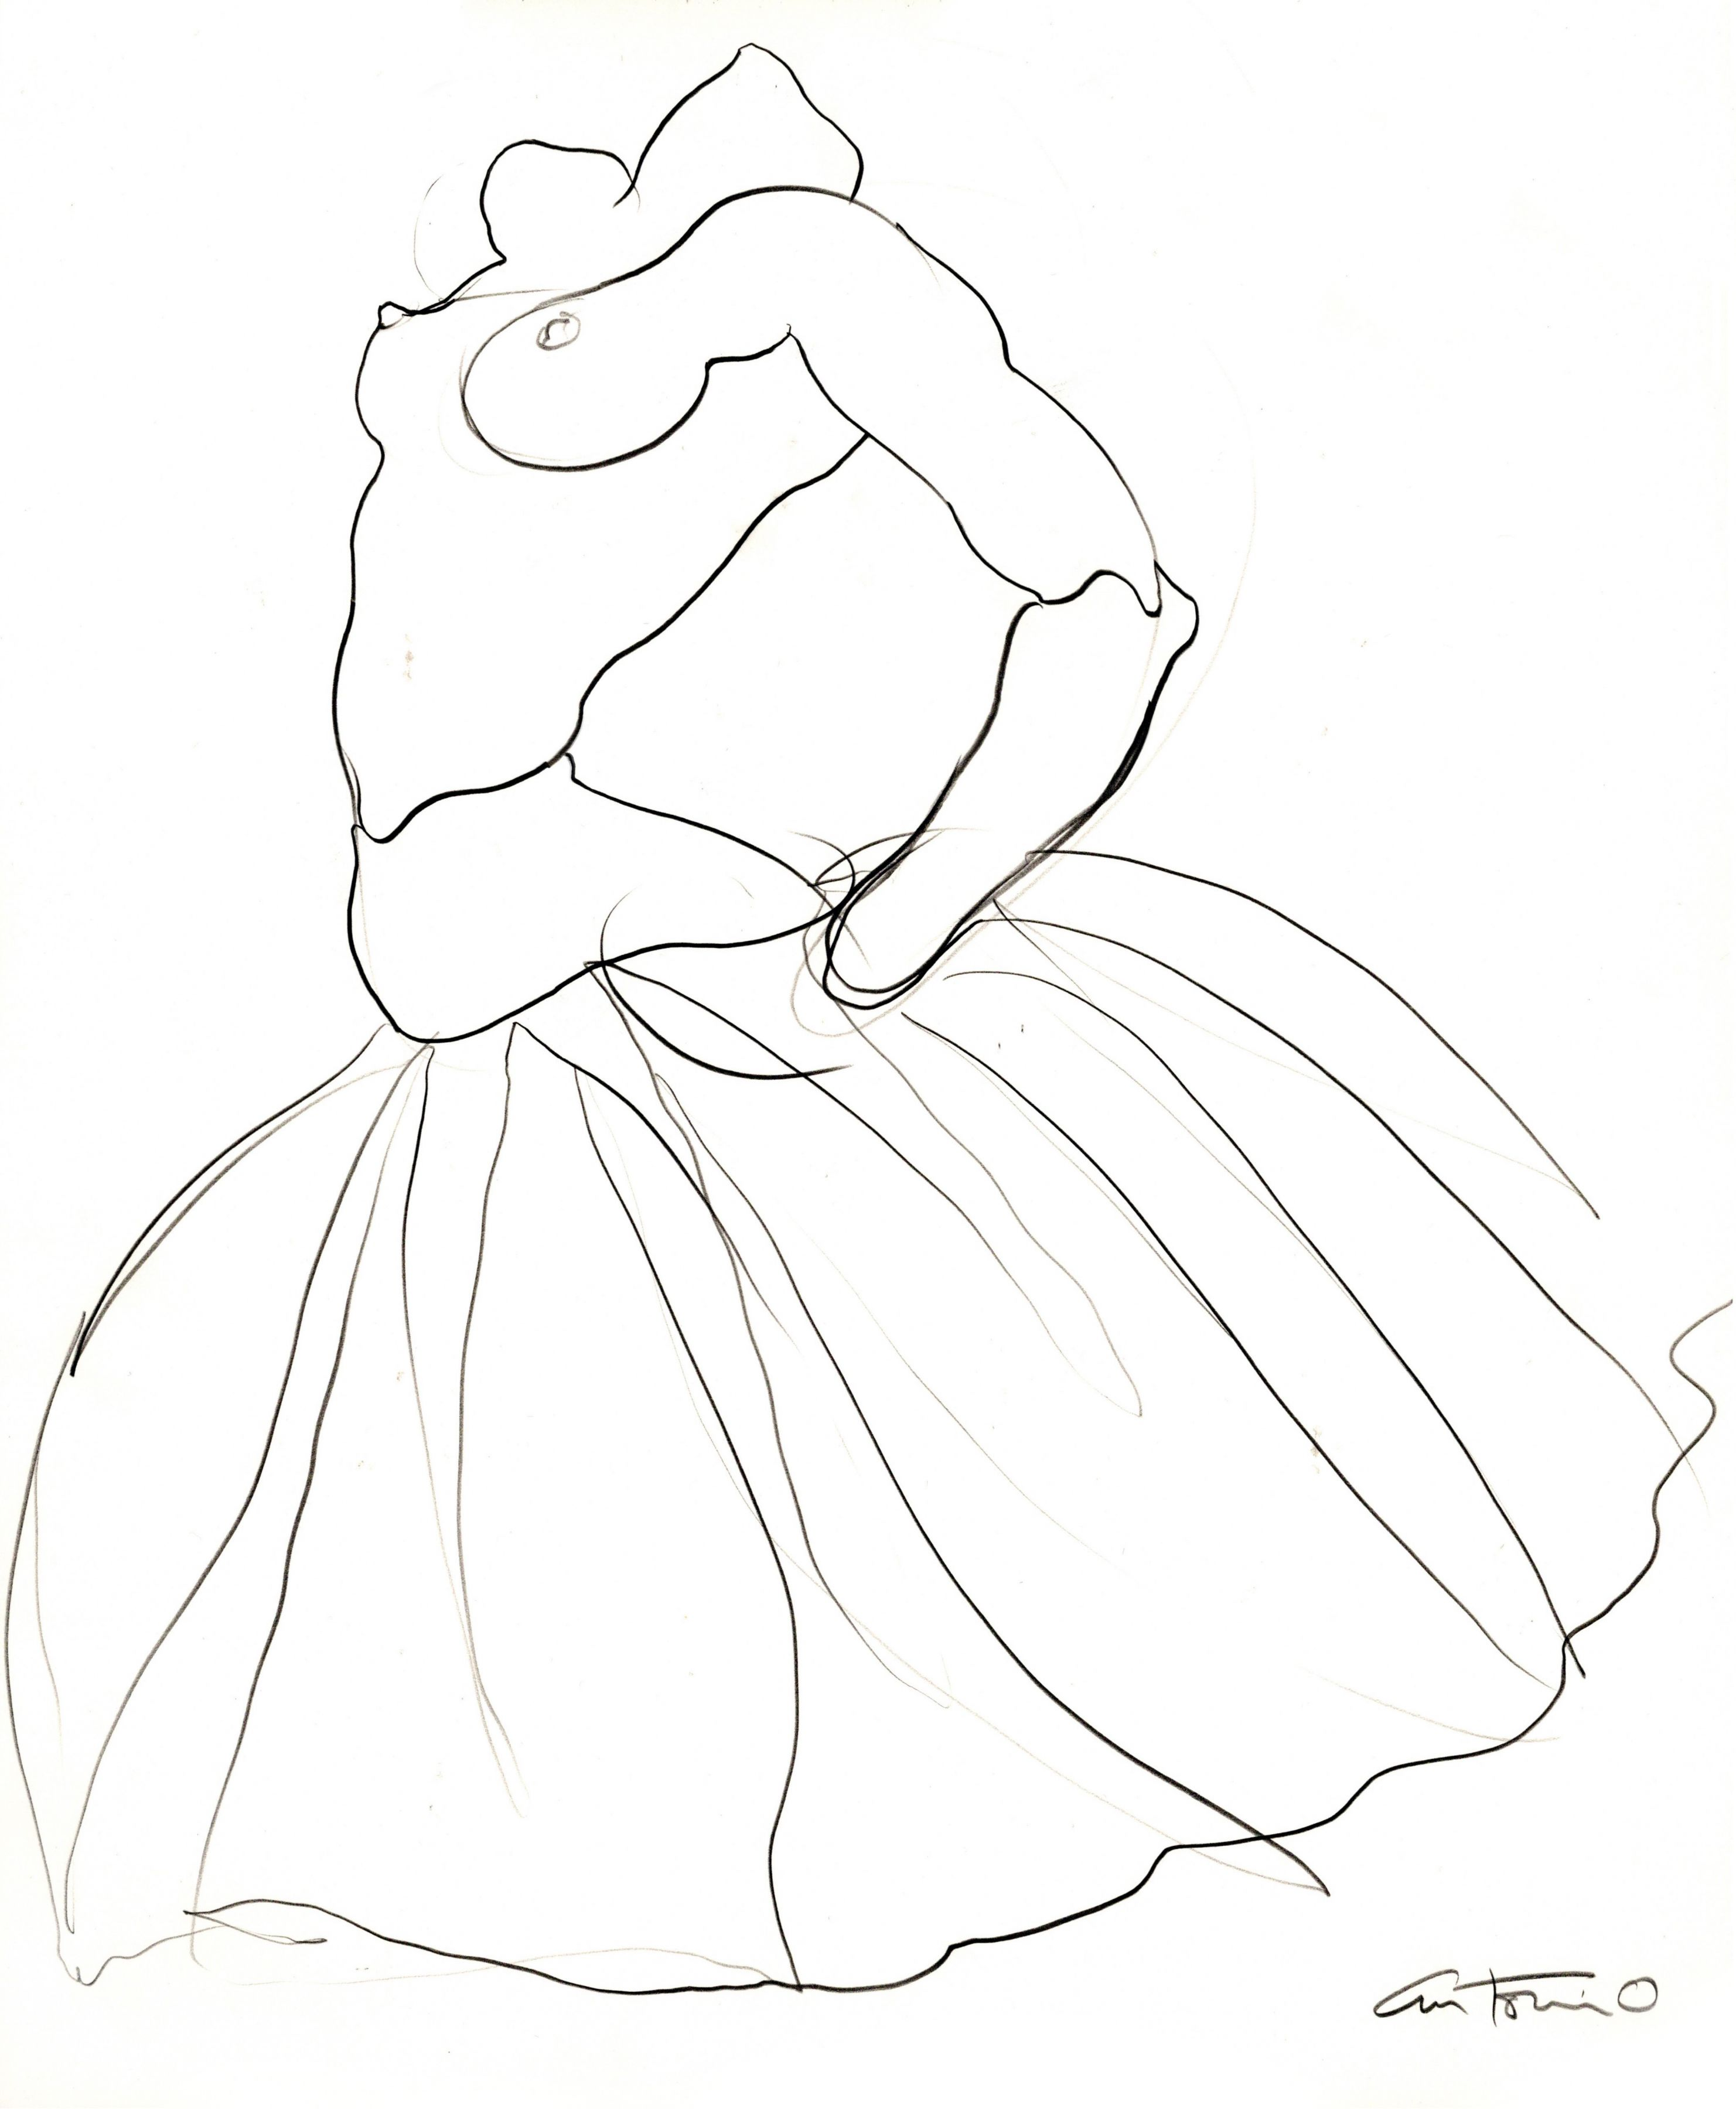 Drawing of ballerina by Antonio Lopez